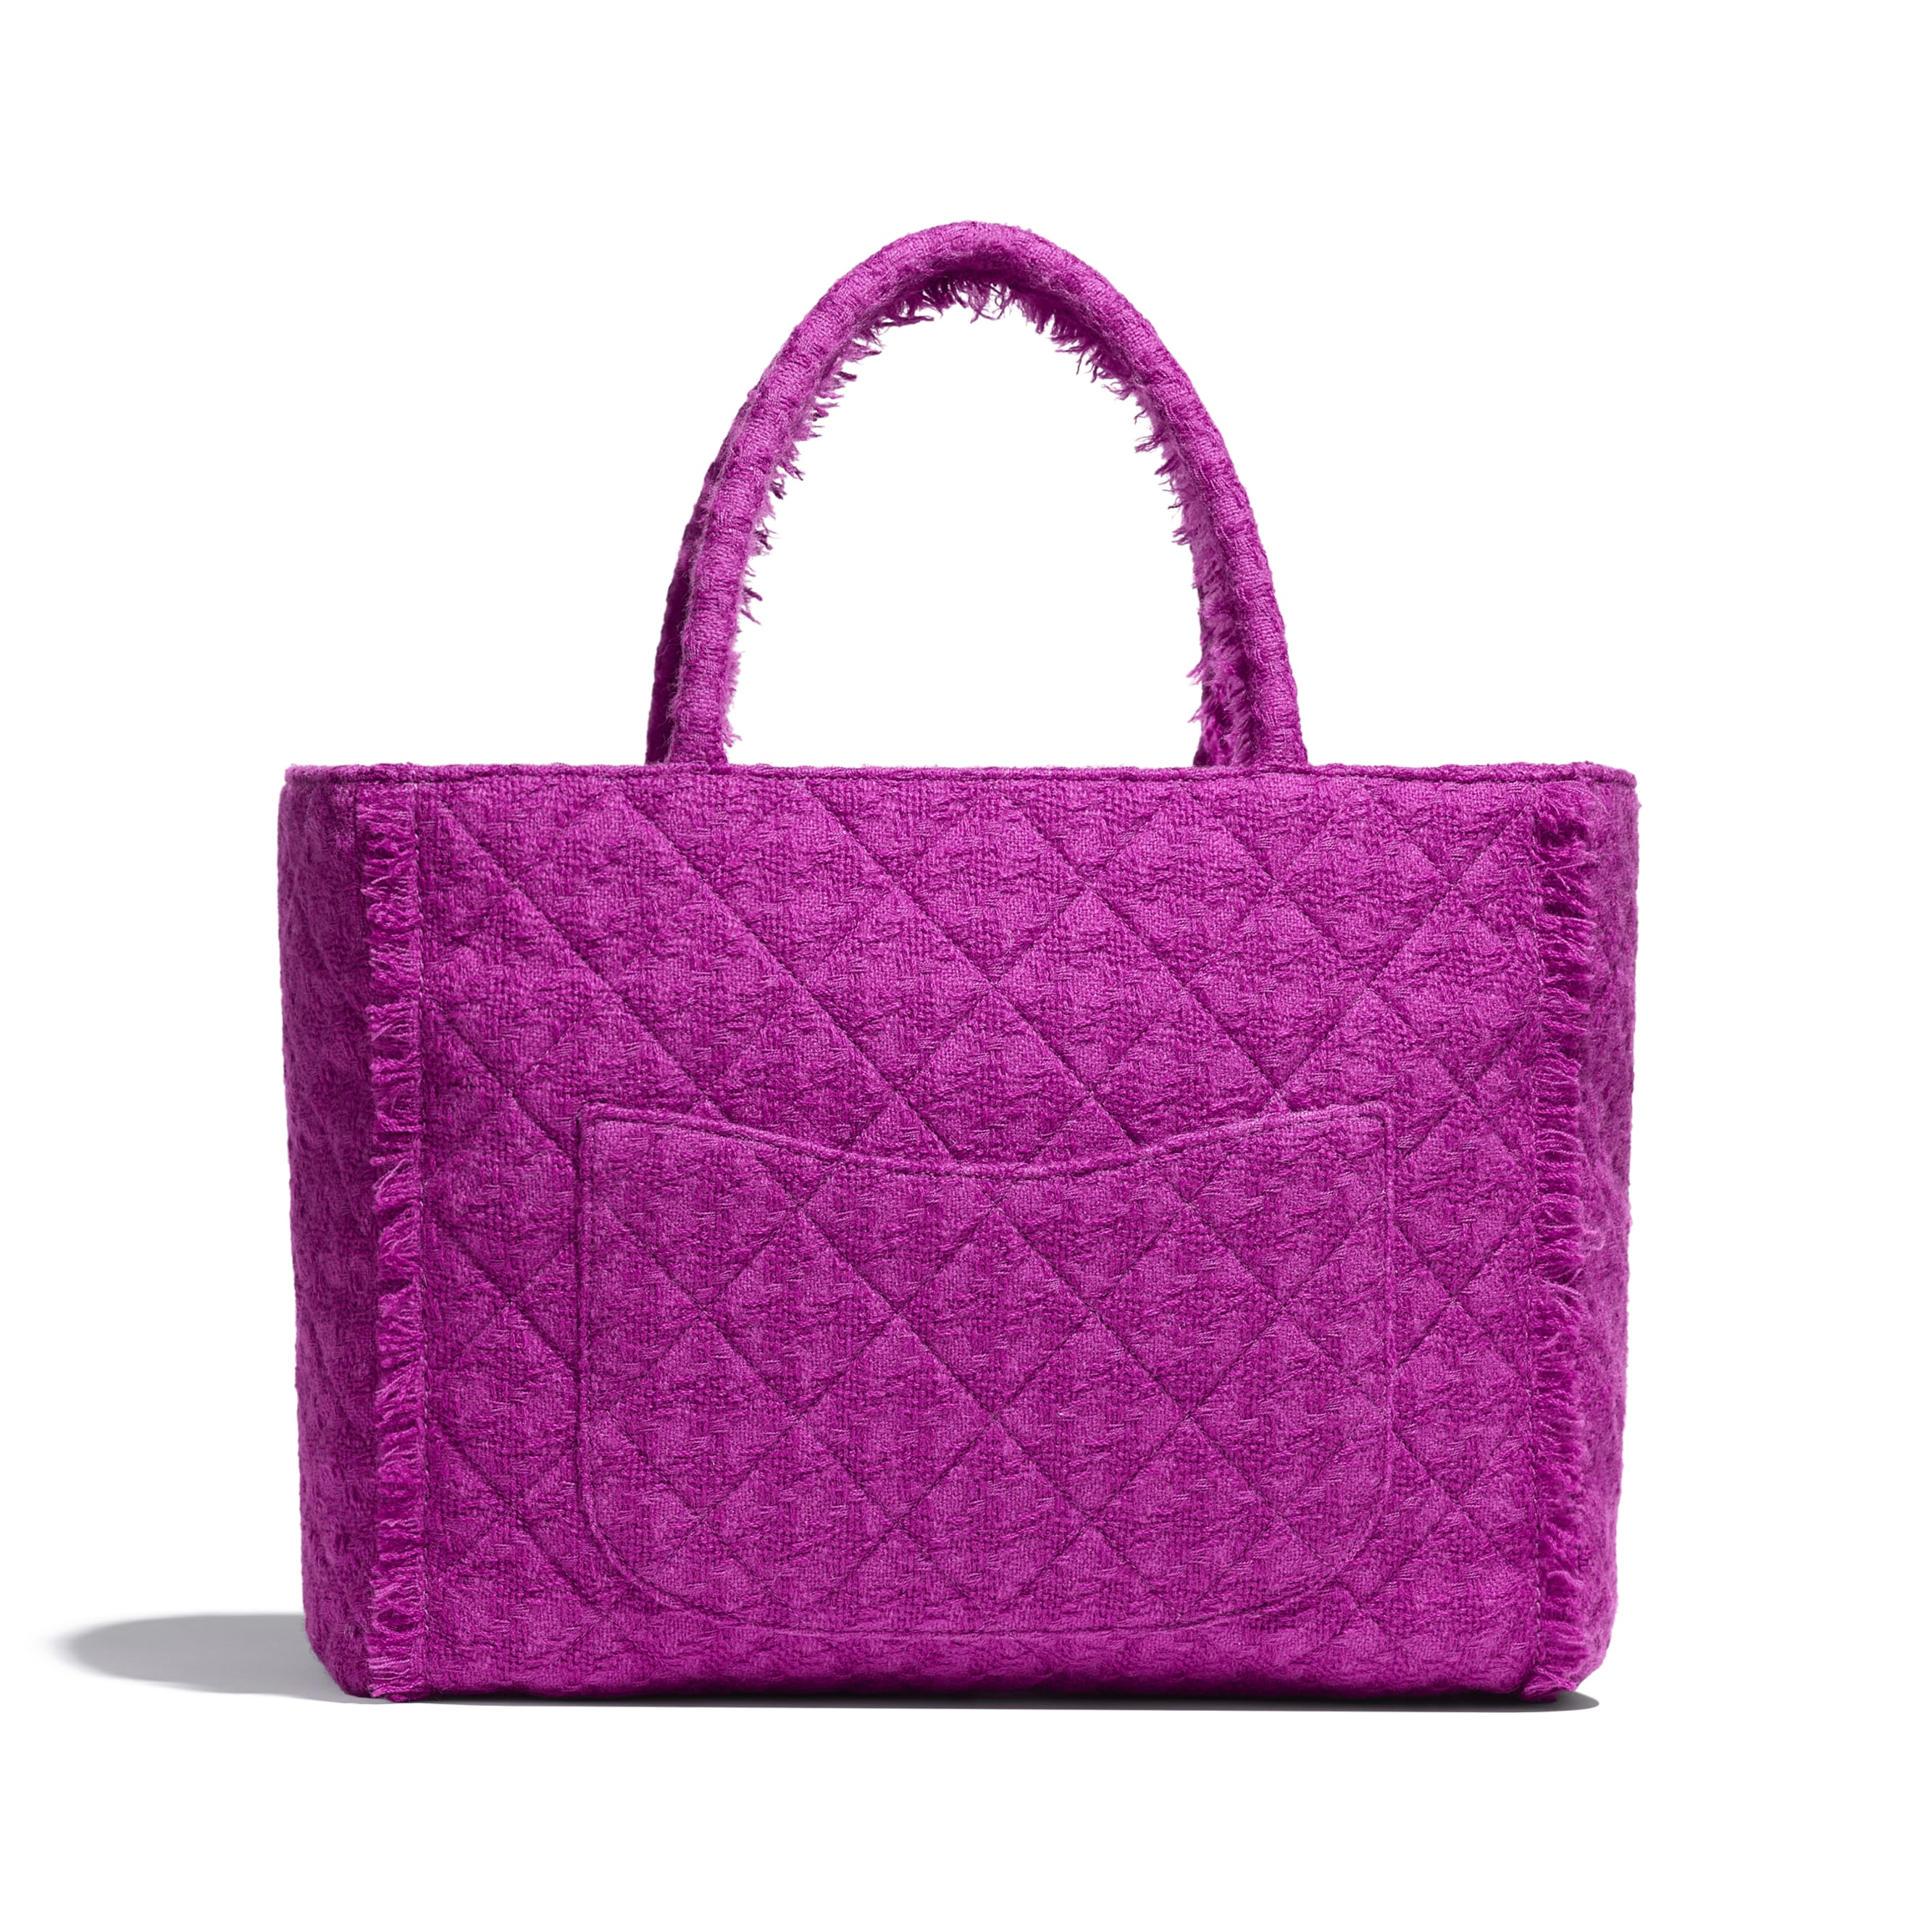 Large Zipped Tote - Fuchsia - Wool Tweed & Gold-Tone Metal - Alternative view - see standard sized version